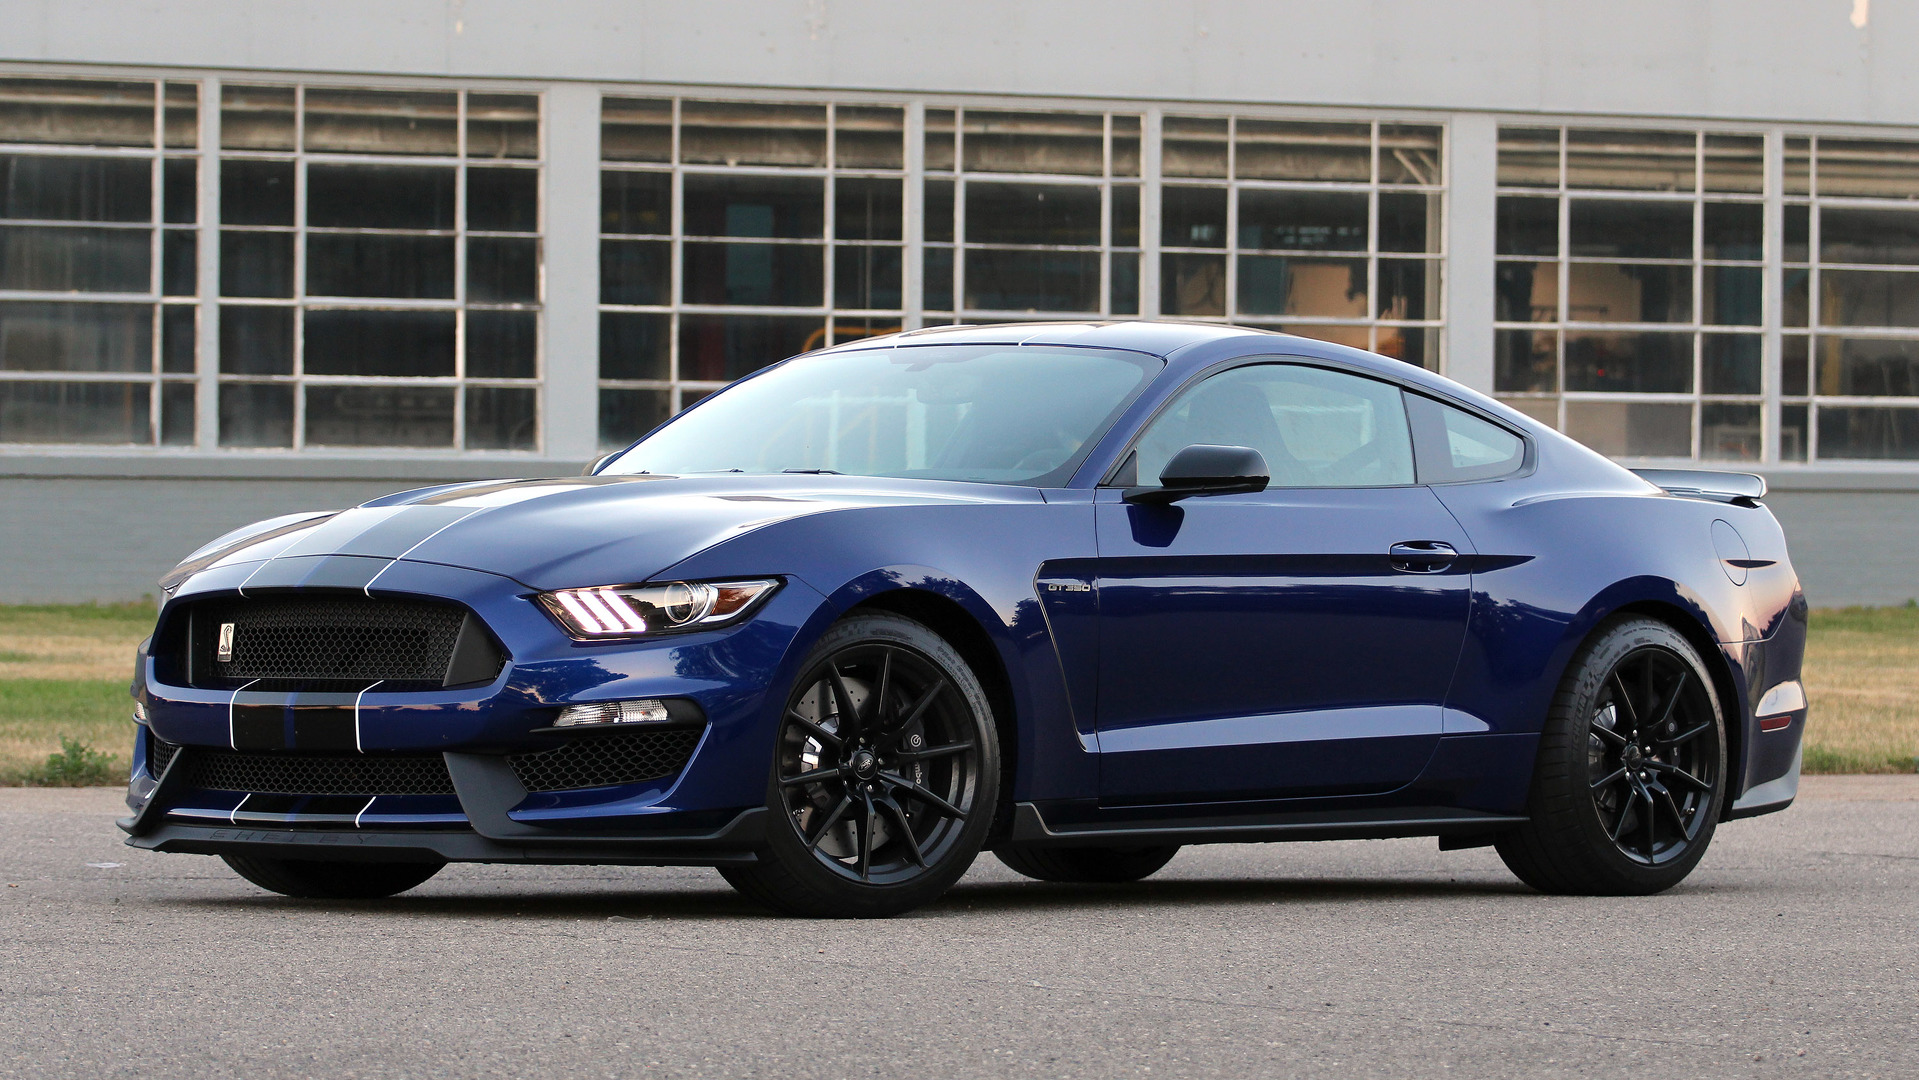 2017 Mustang Shelby Gt350 Black >> First Drive: 2016 Ford Shelby GT350 Mustang